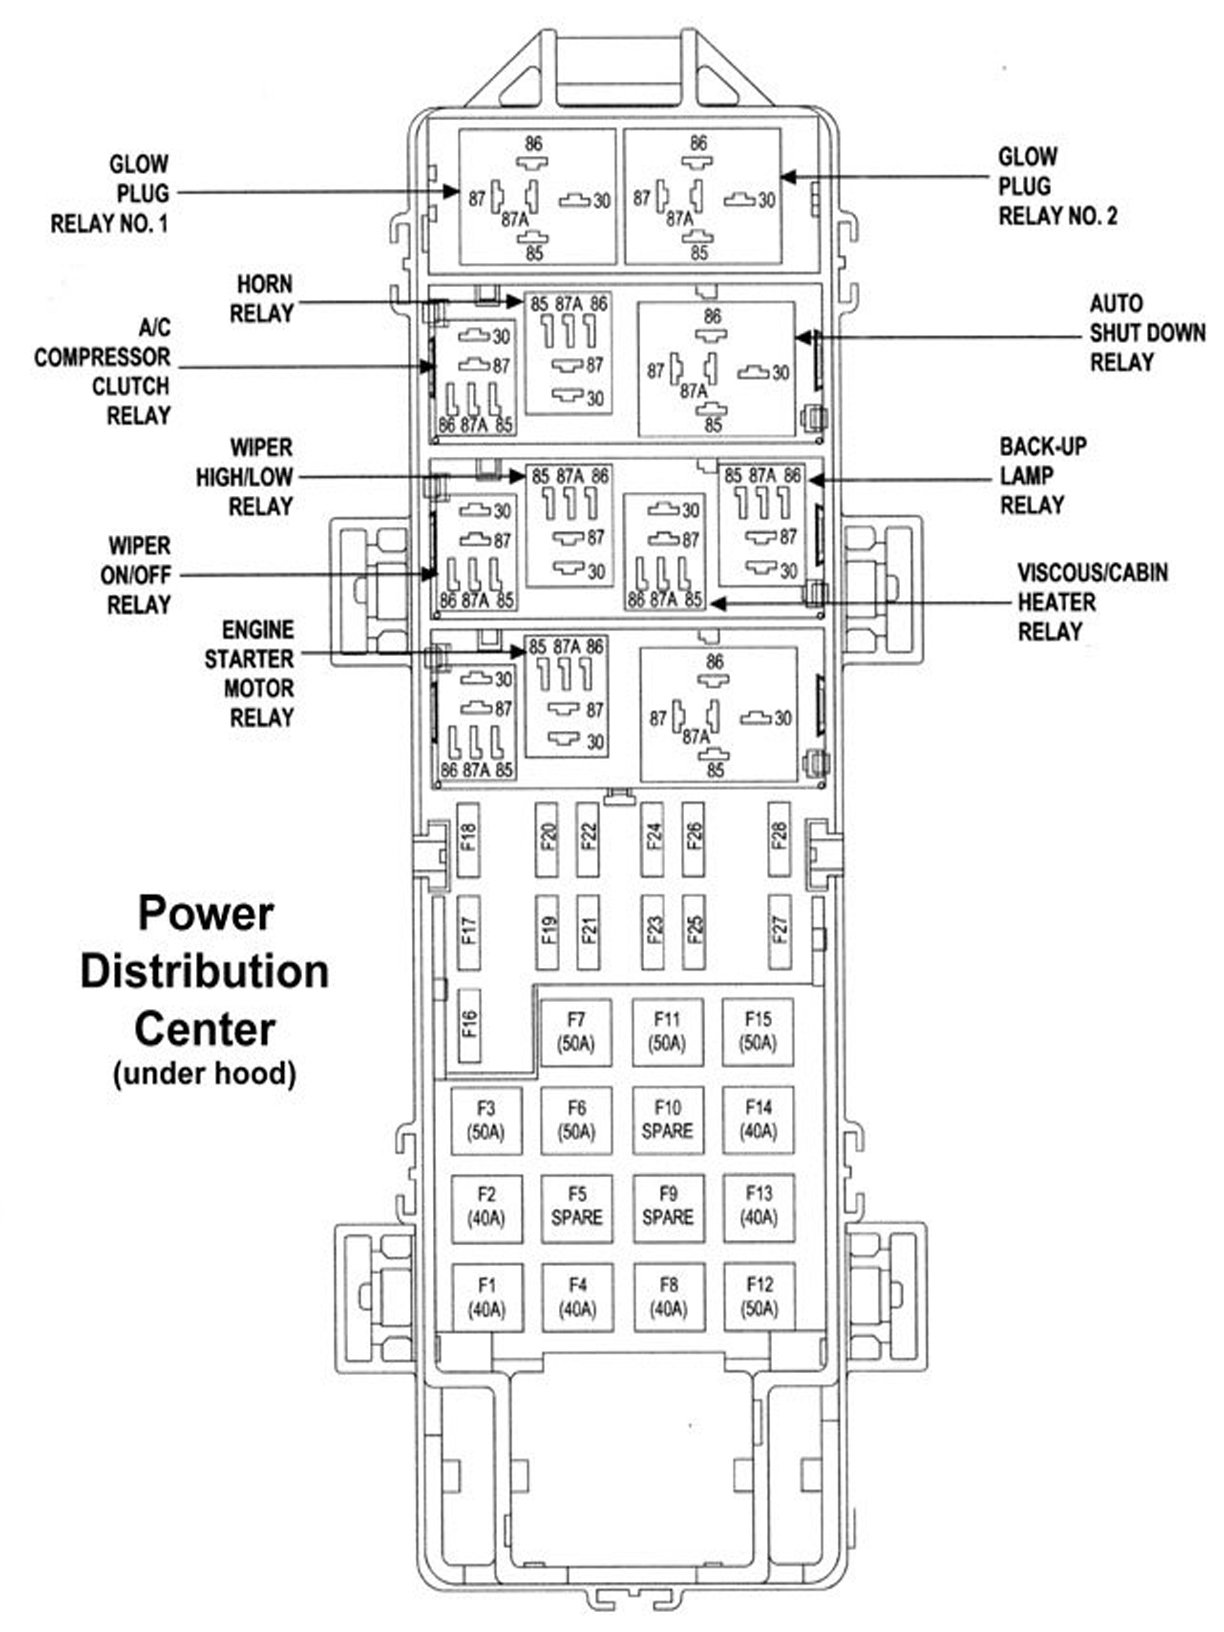 Jeep Grand Cherokee 1999 2004 Fuse Box Diagram 397760 on 2001 dodge grand caravan ecm location